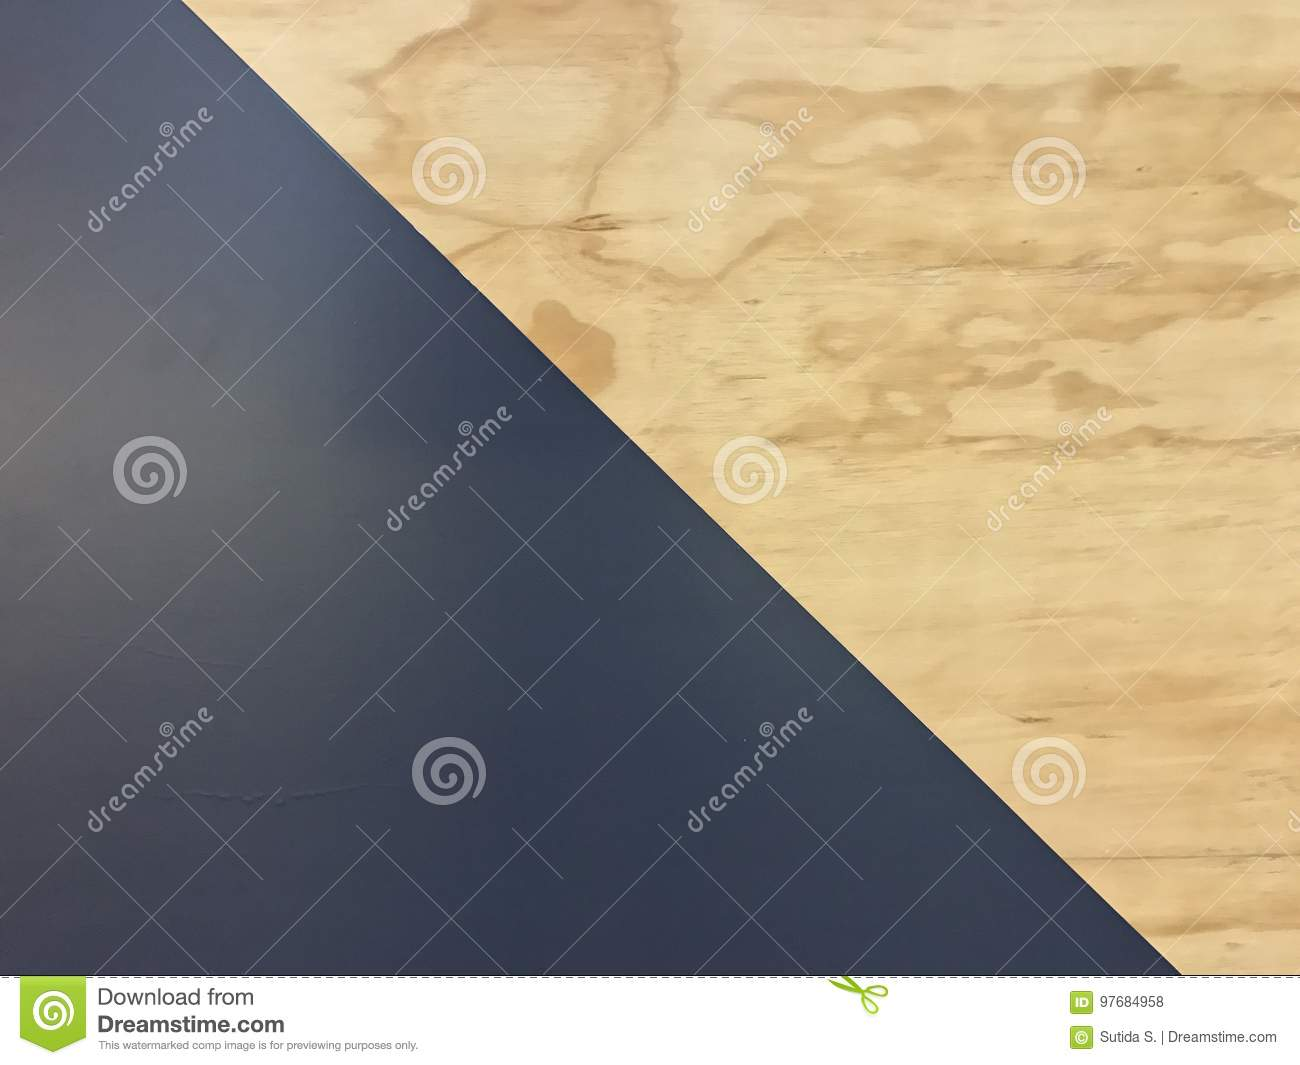 Modern wall decoration stock photo. Image of house, abstract - 97684958